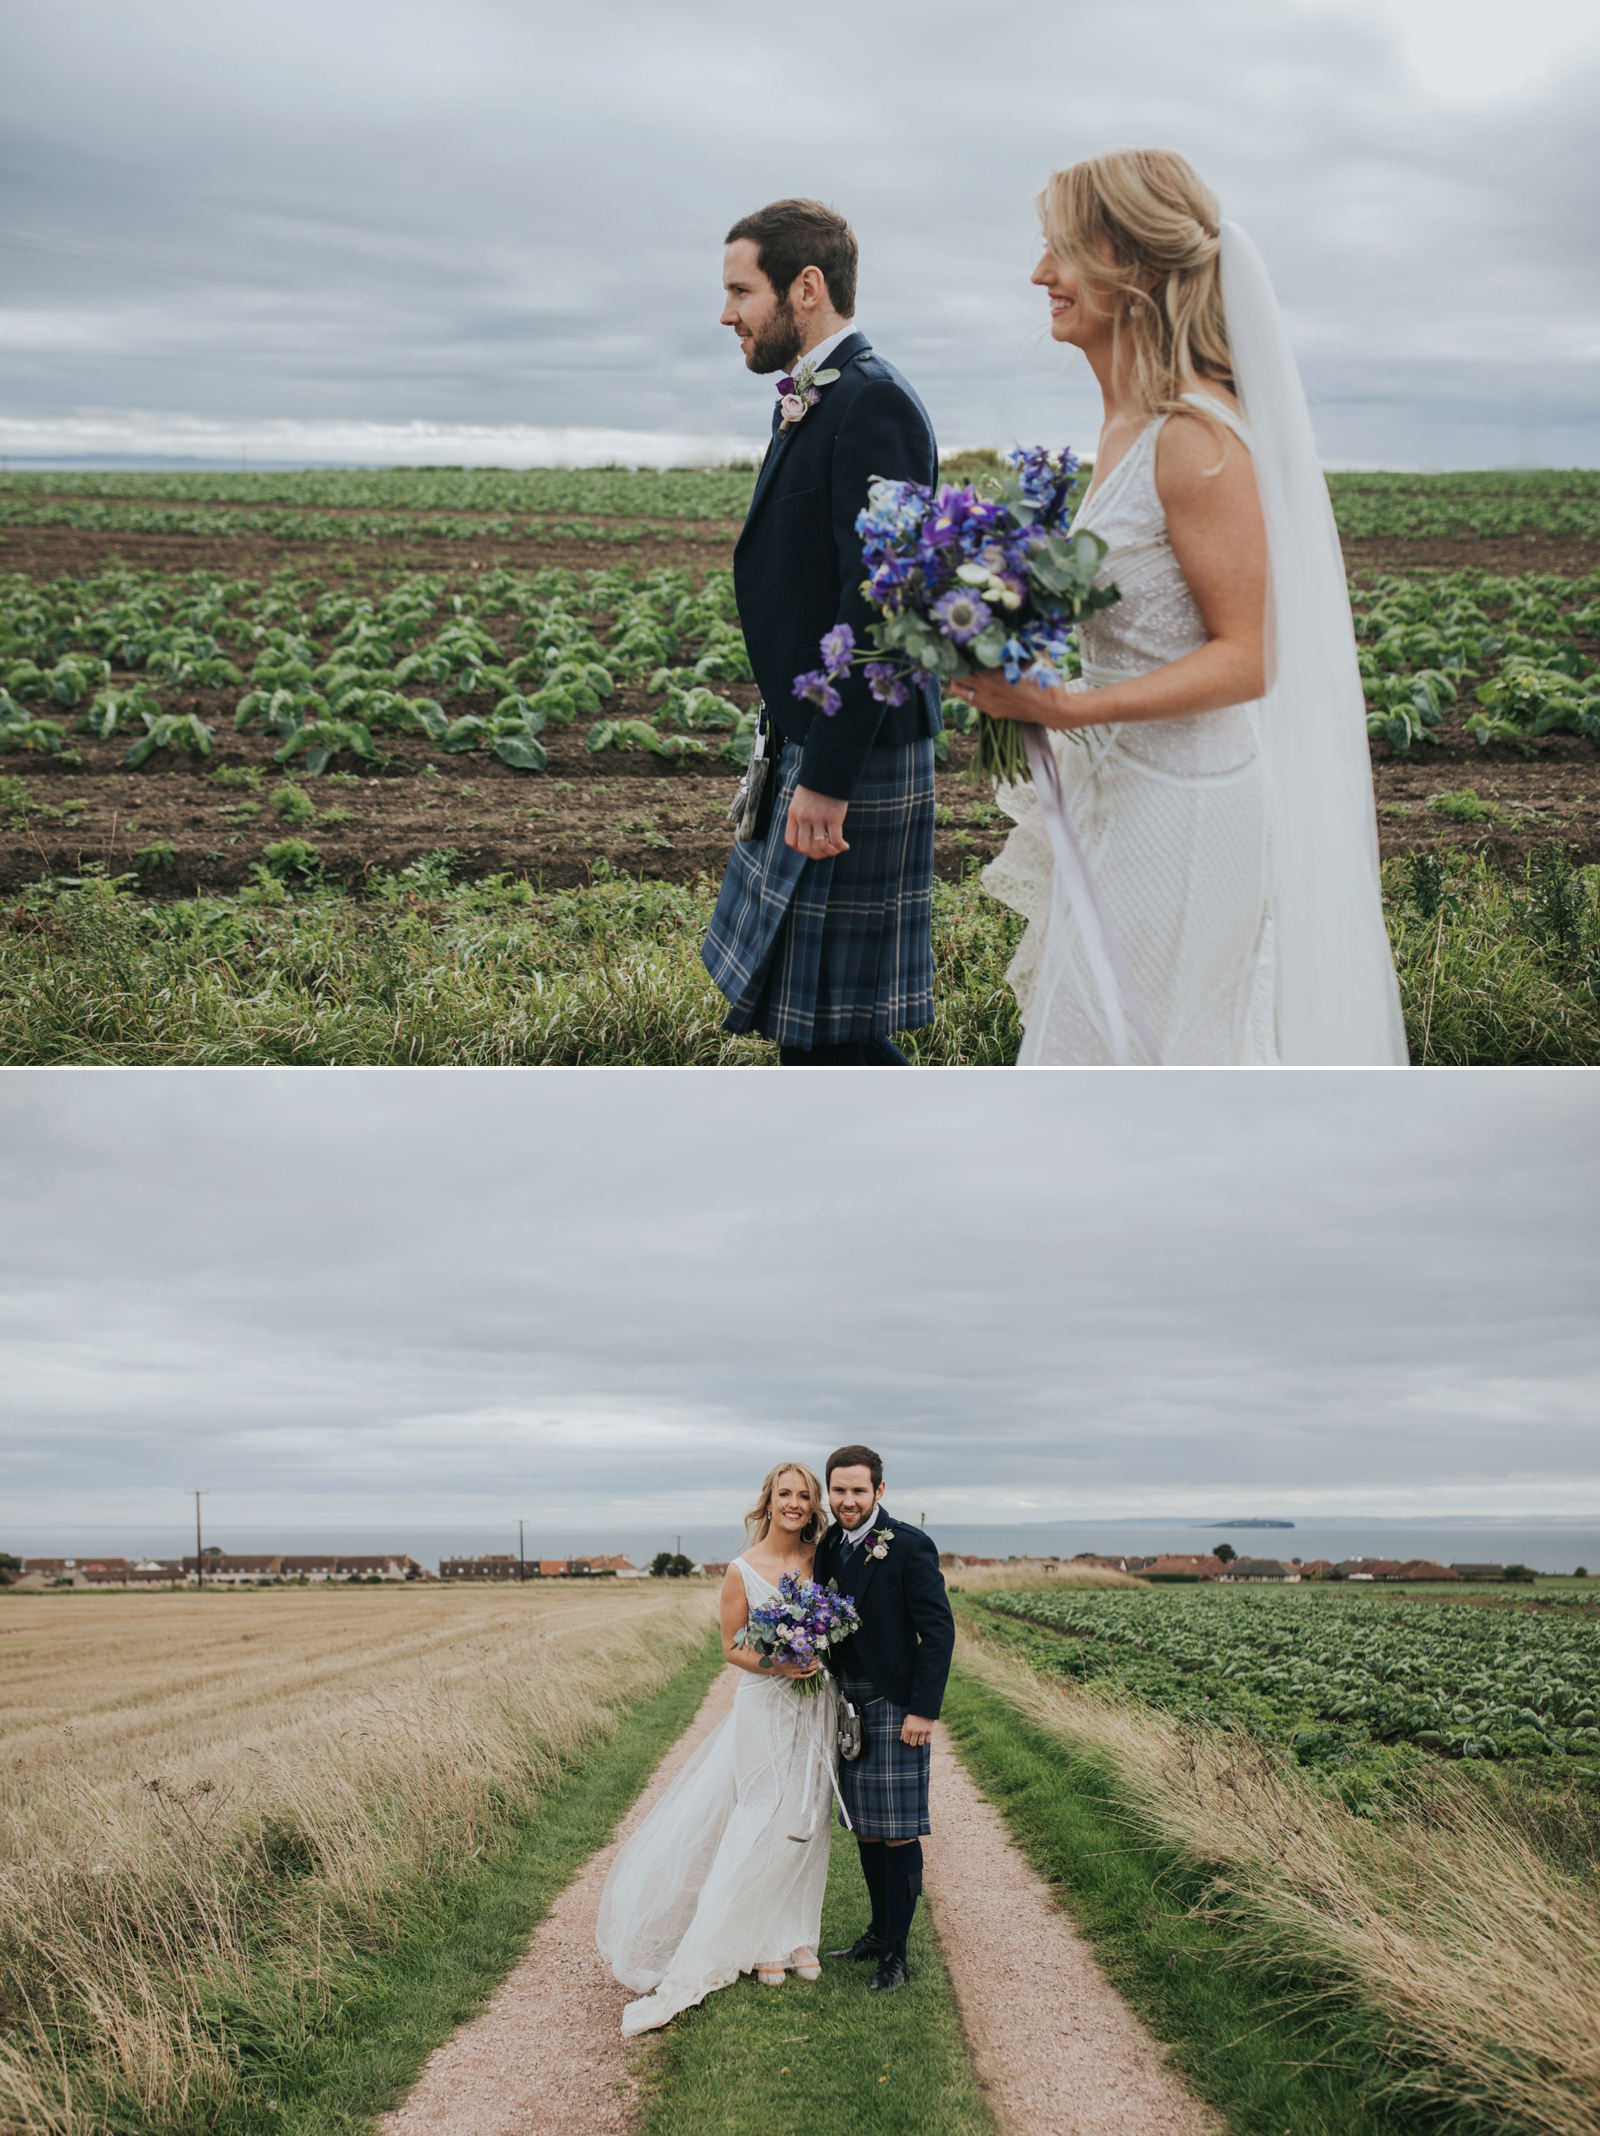 cow-shed-crail-rustic-wedding-gemma-andy-loraine-ross-photographygemma-andy-wedding-0541.jpg